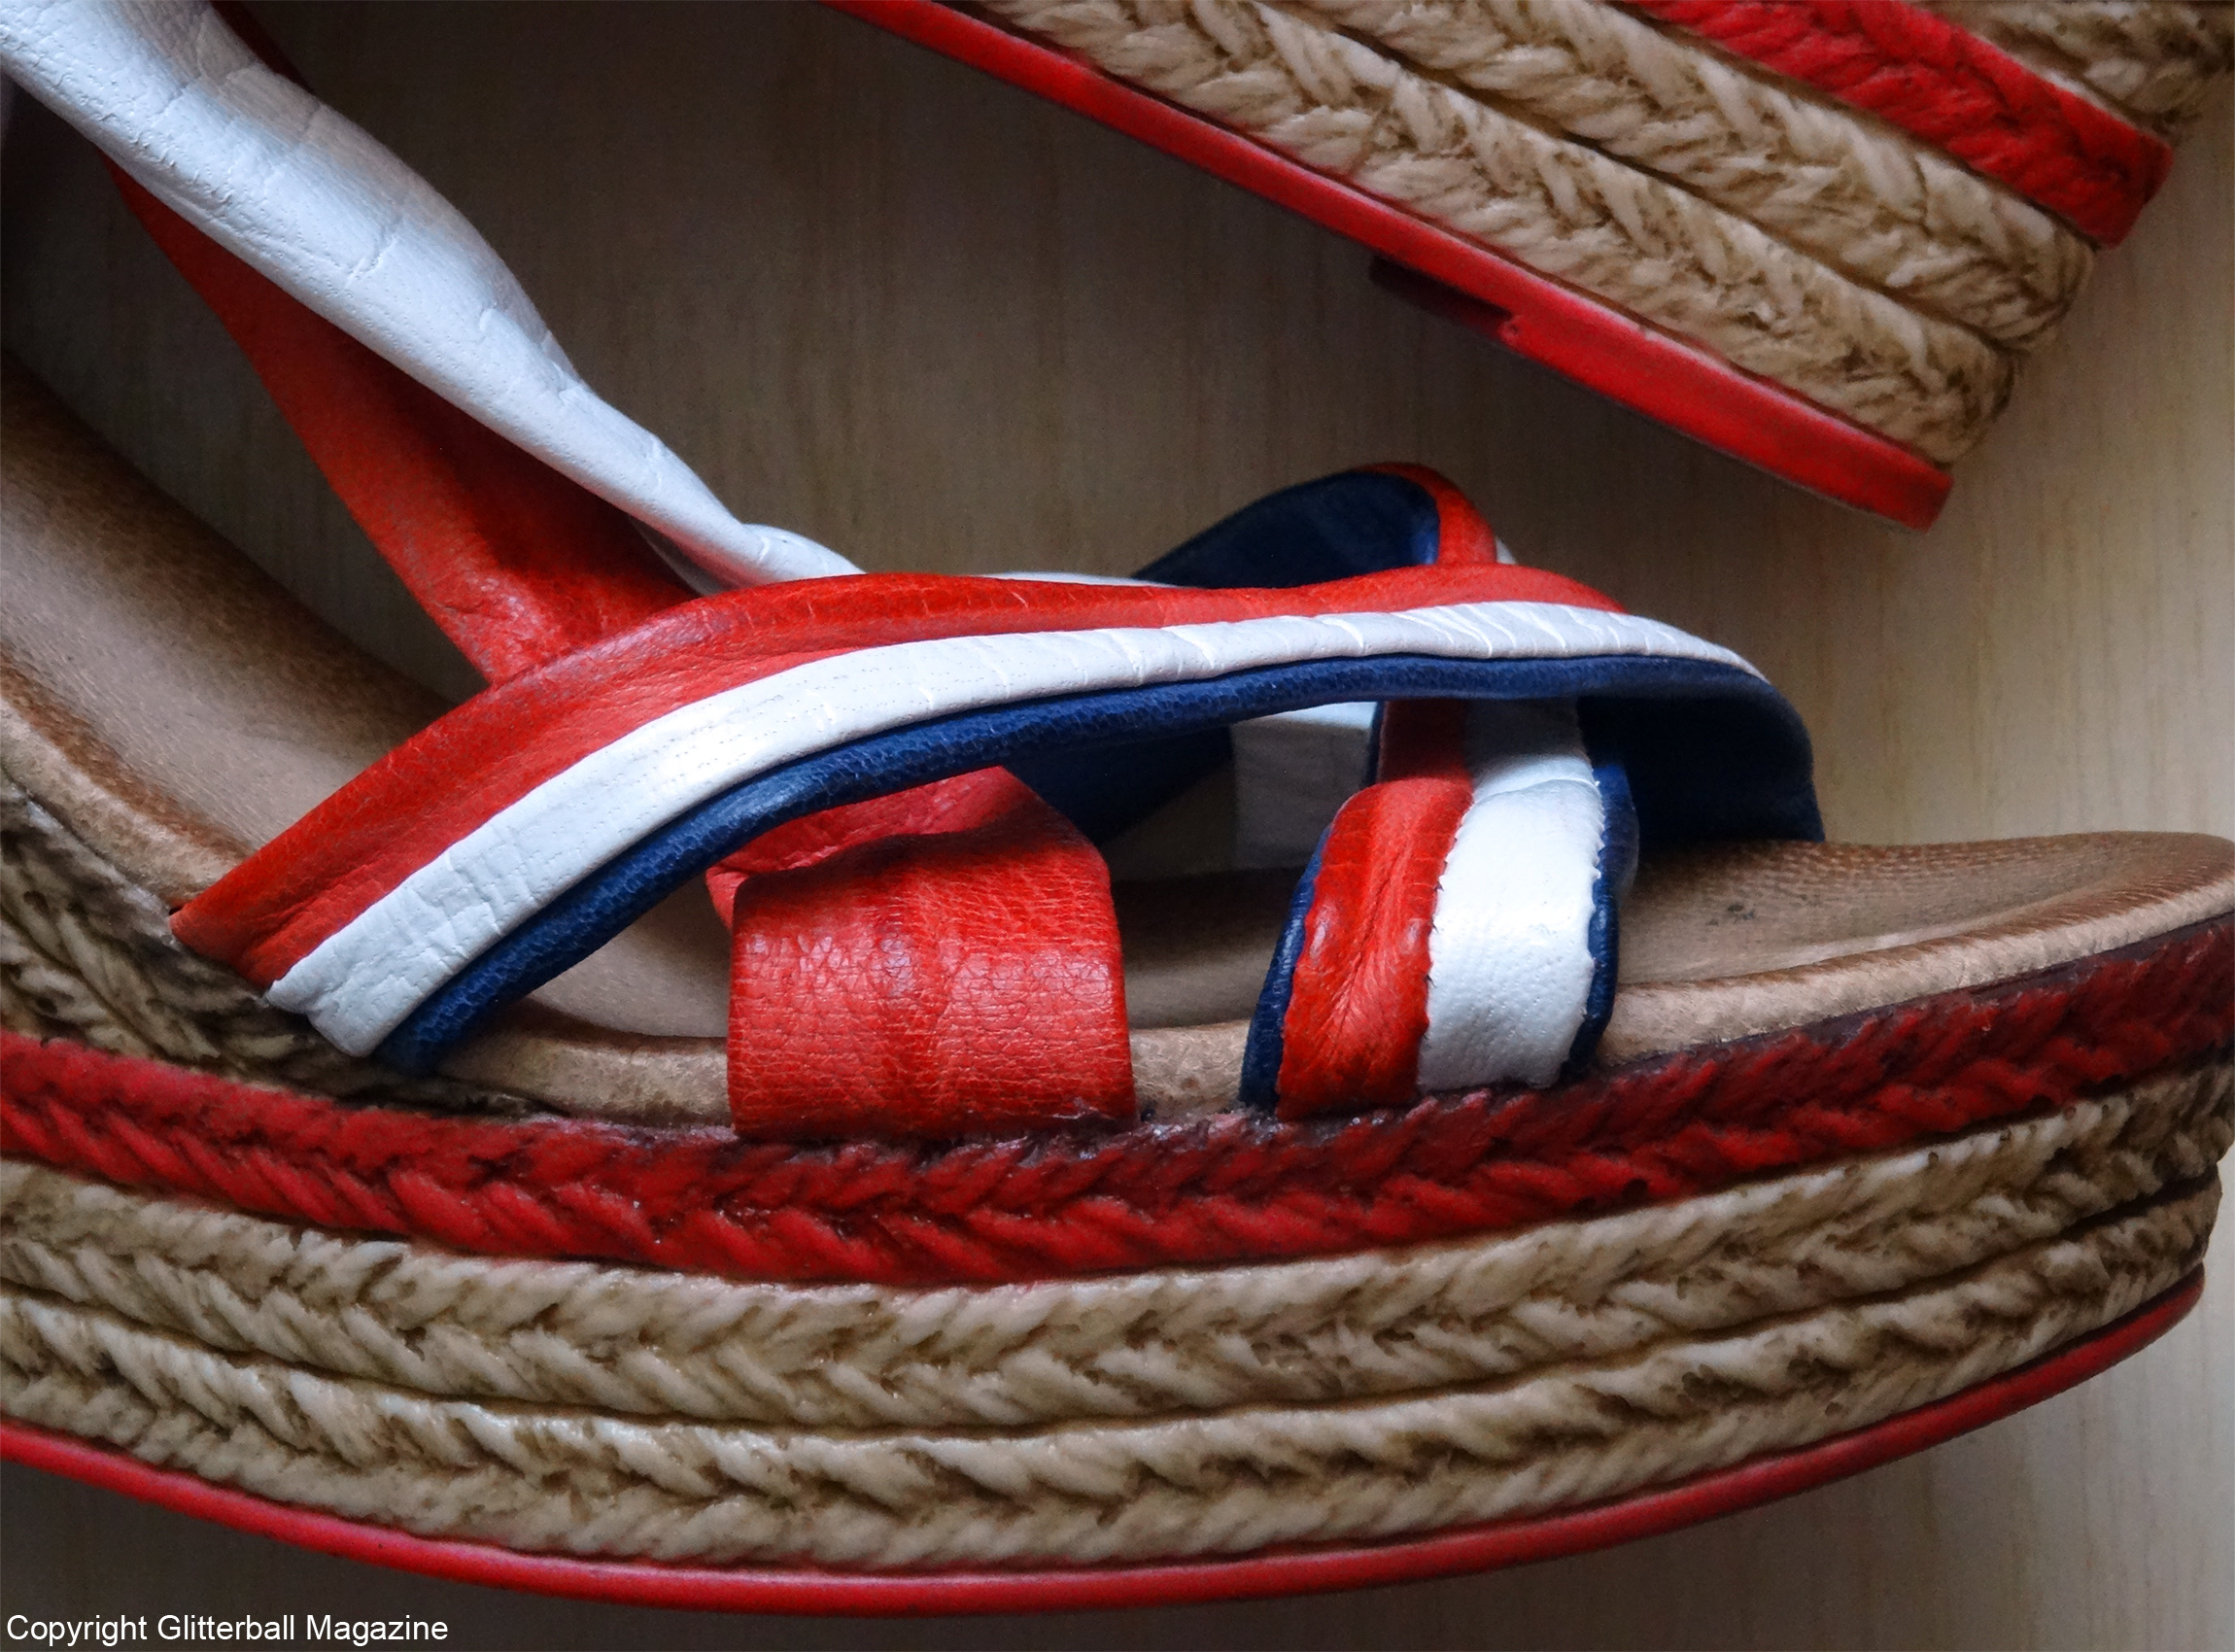 red shoes close up